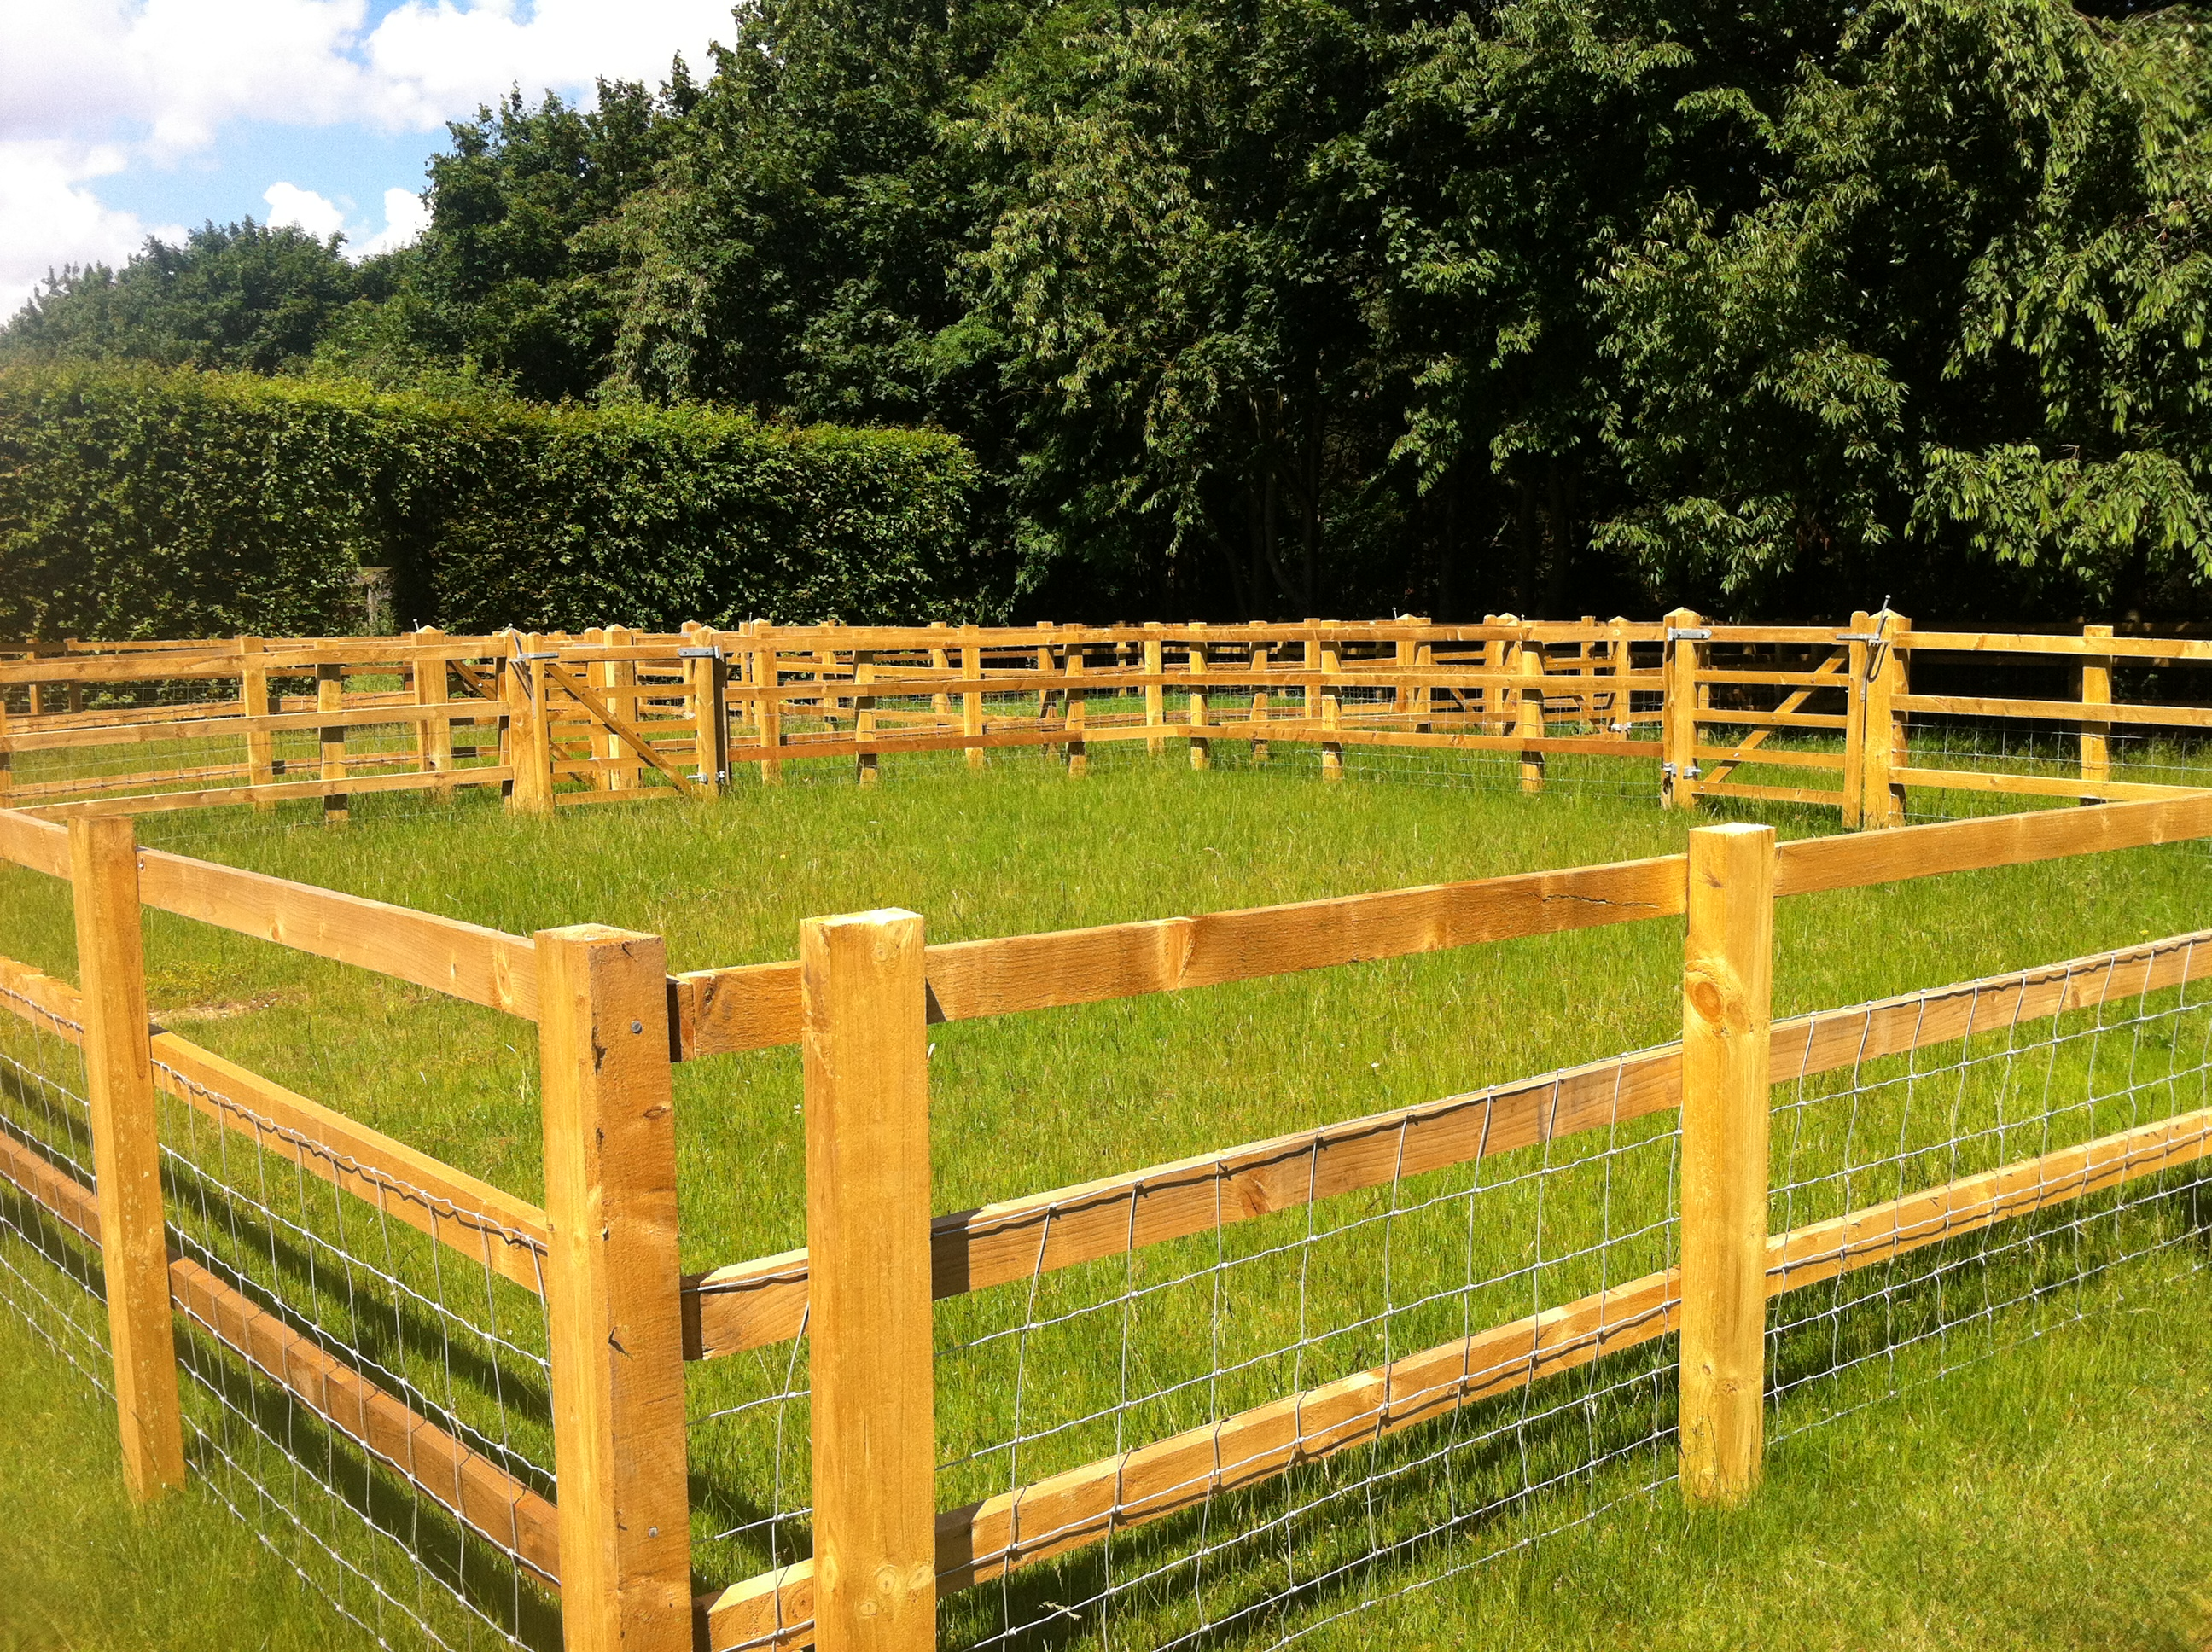 Post and Rail Fencing Enclosure